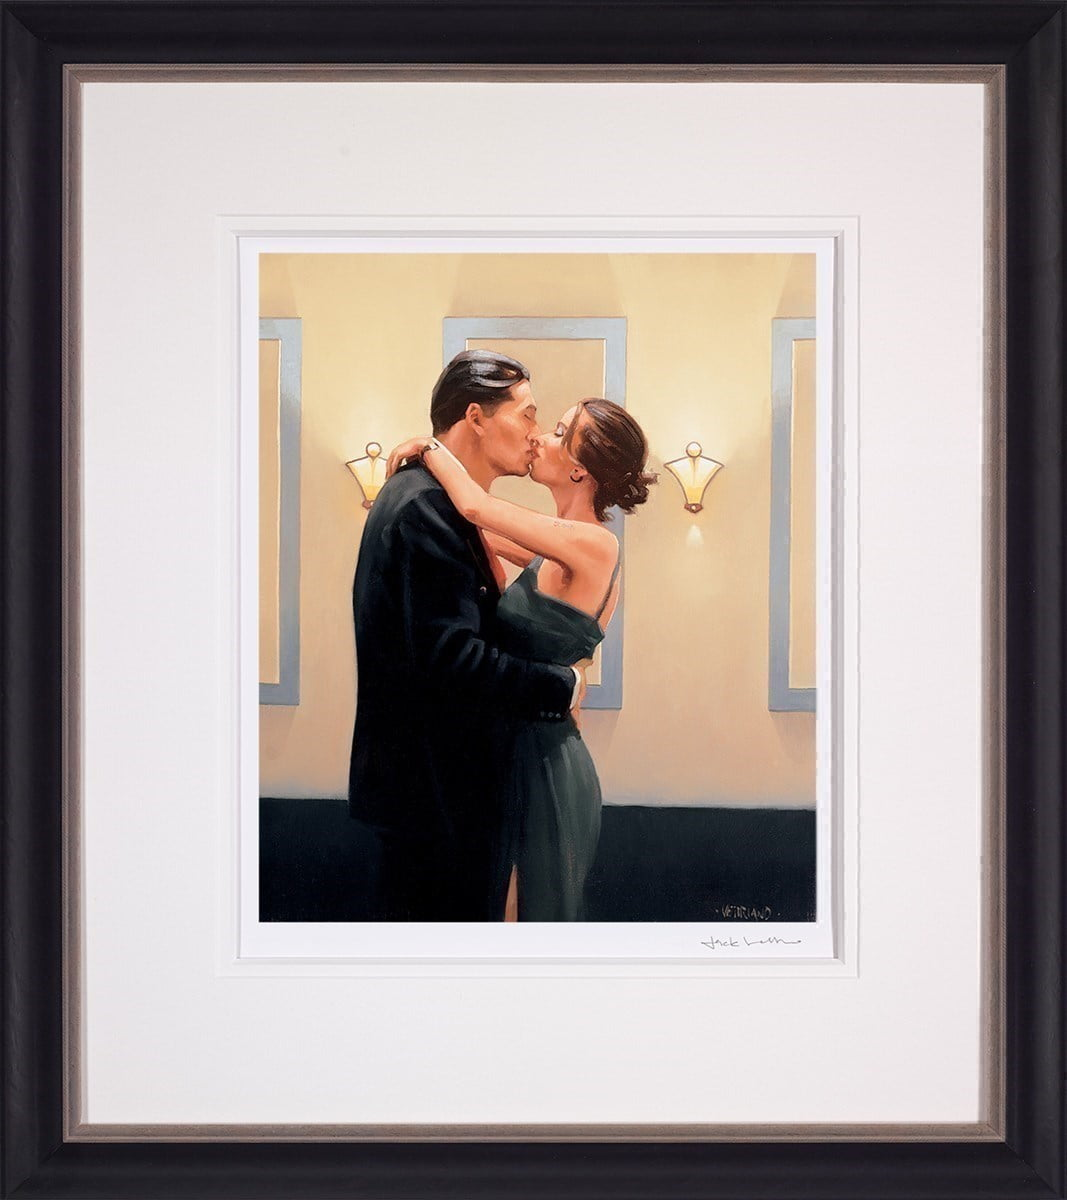 Betrayal - First Kiss ~ Jack Vettriano